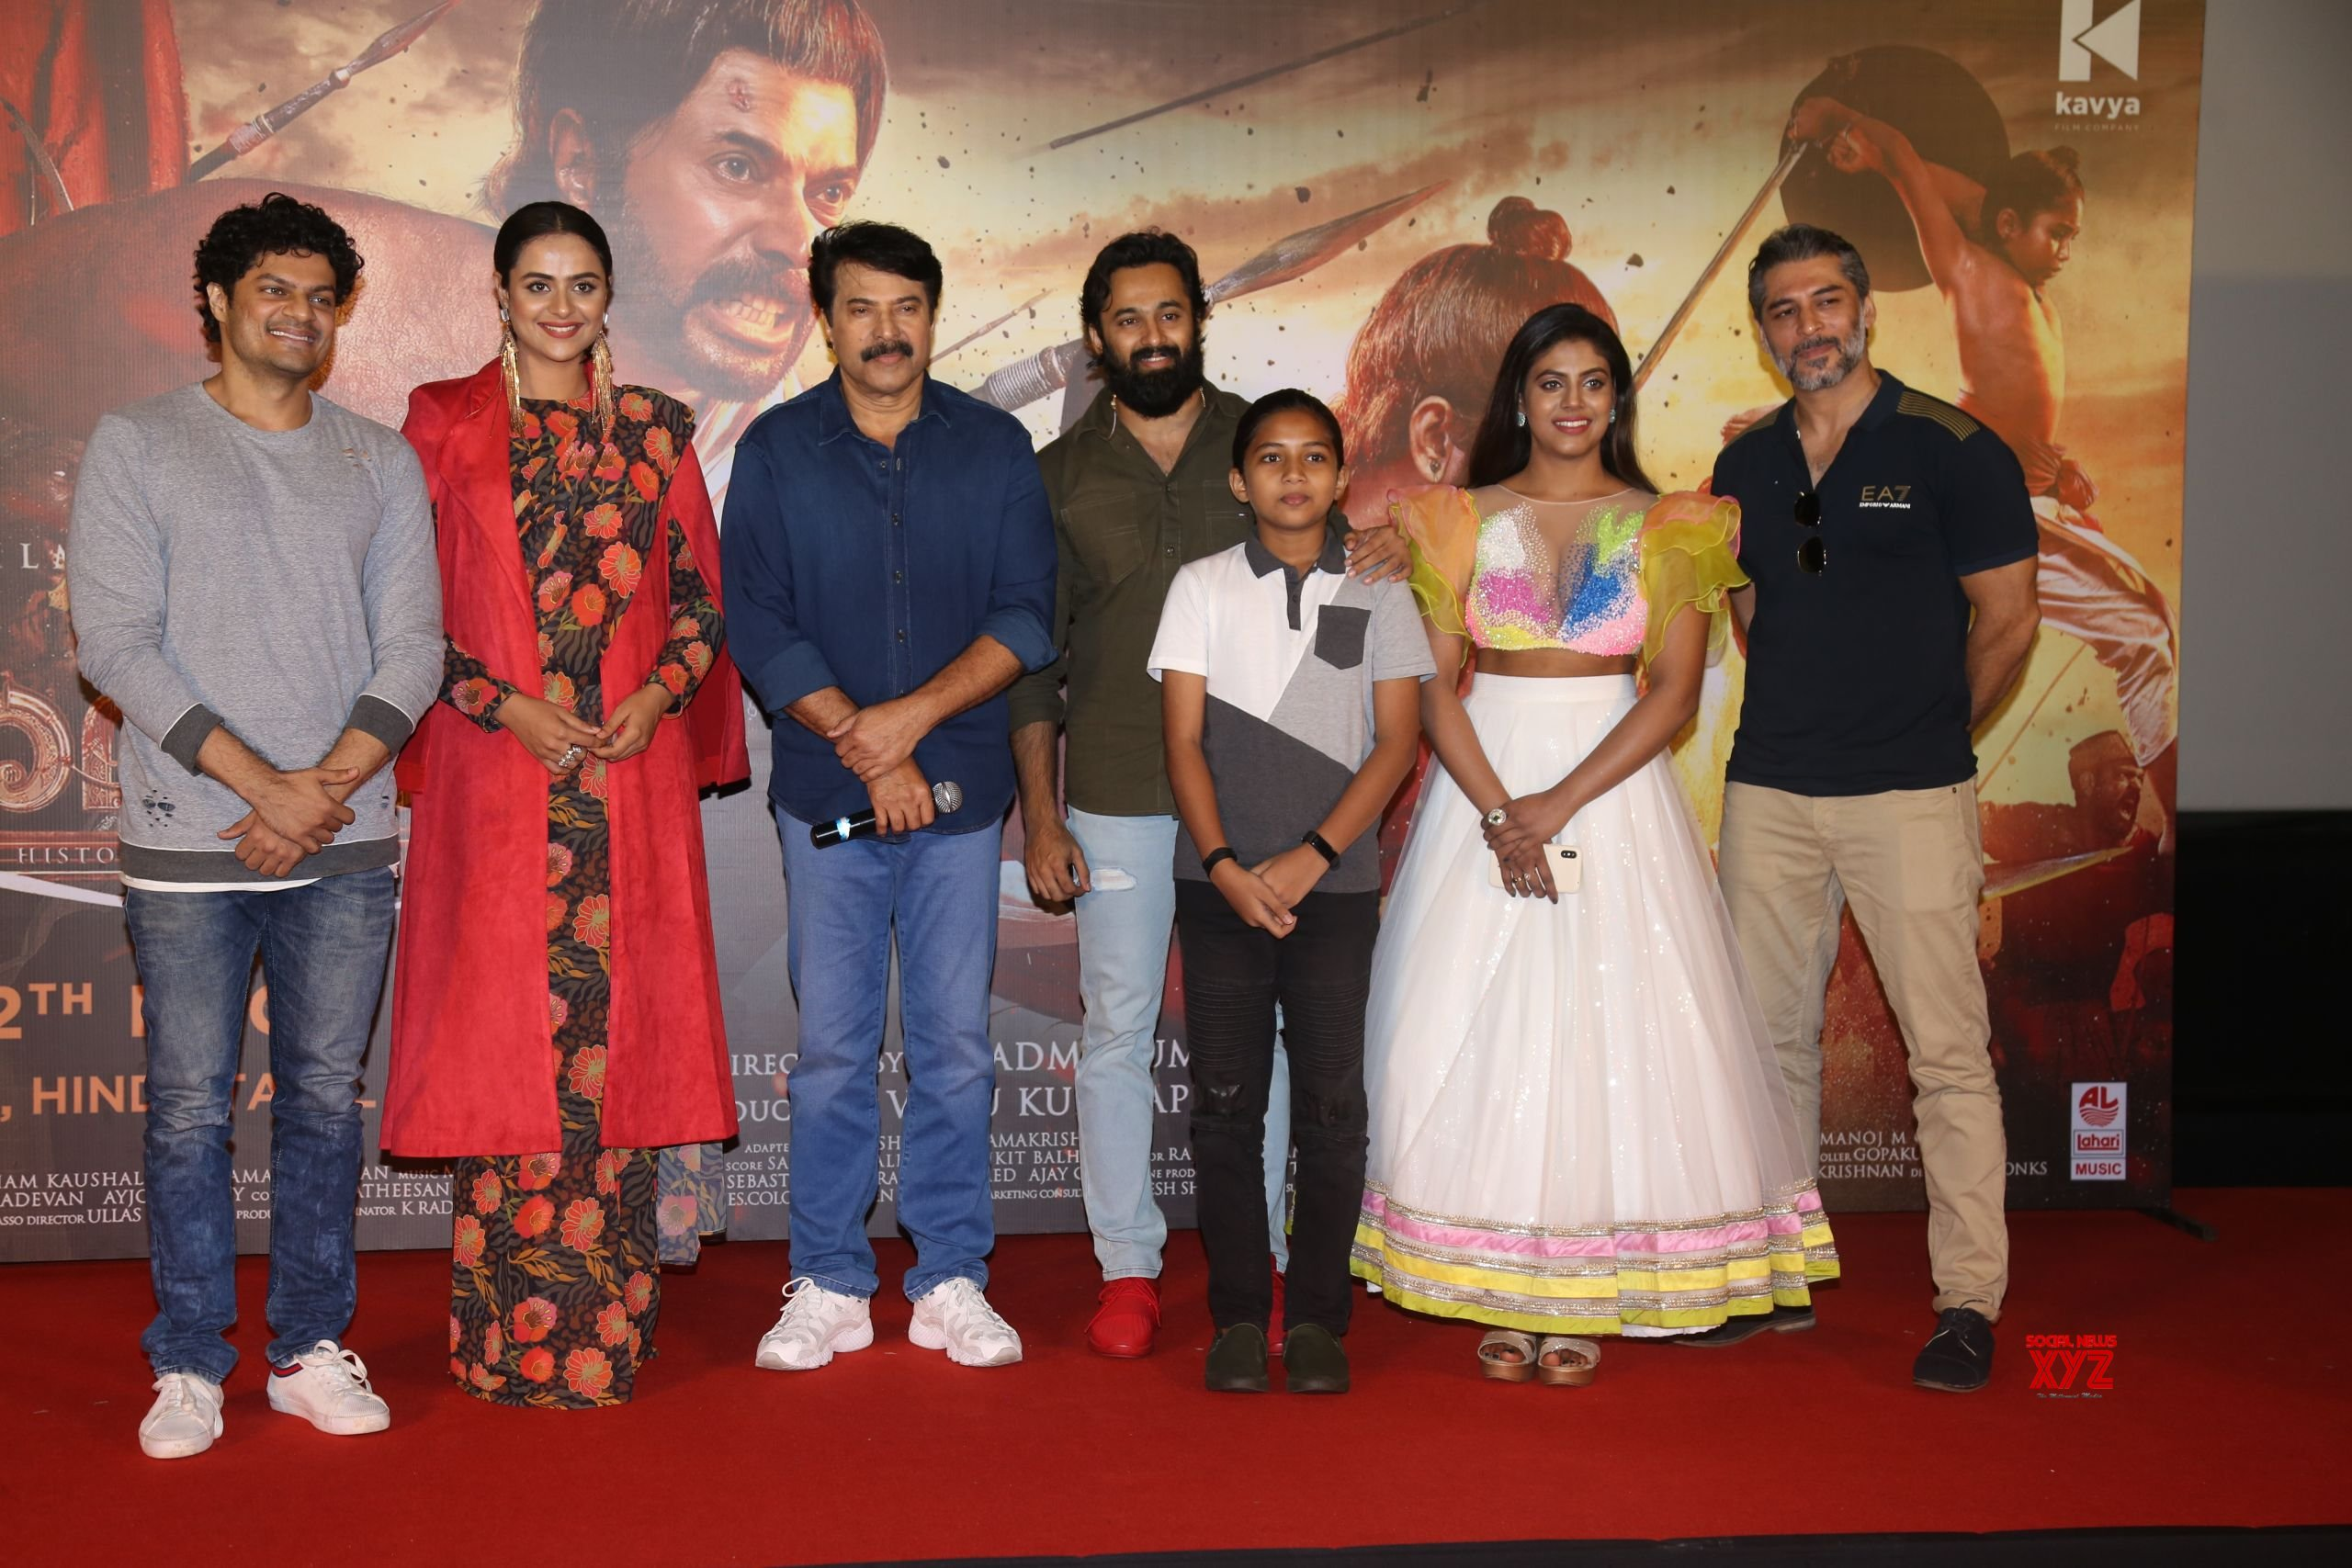 Mammootty At The Trailer Launch Of His Film Mamangam At PVR Juhu - Gallery